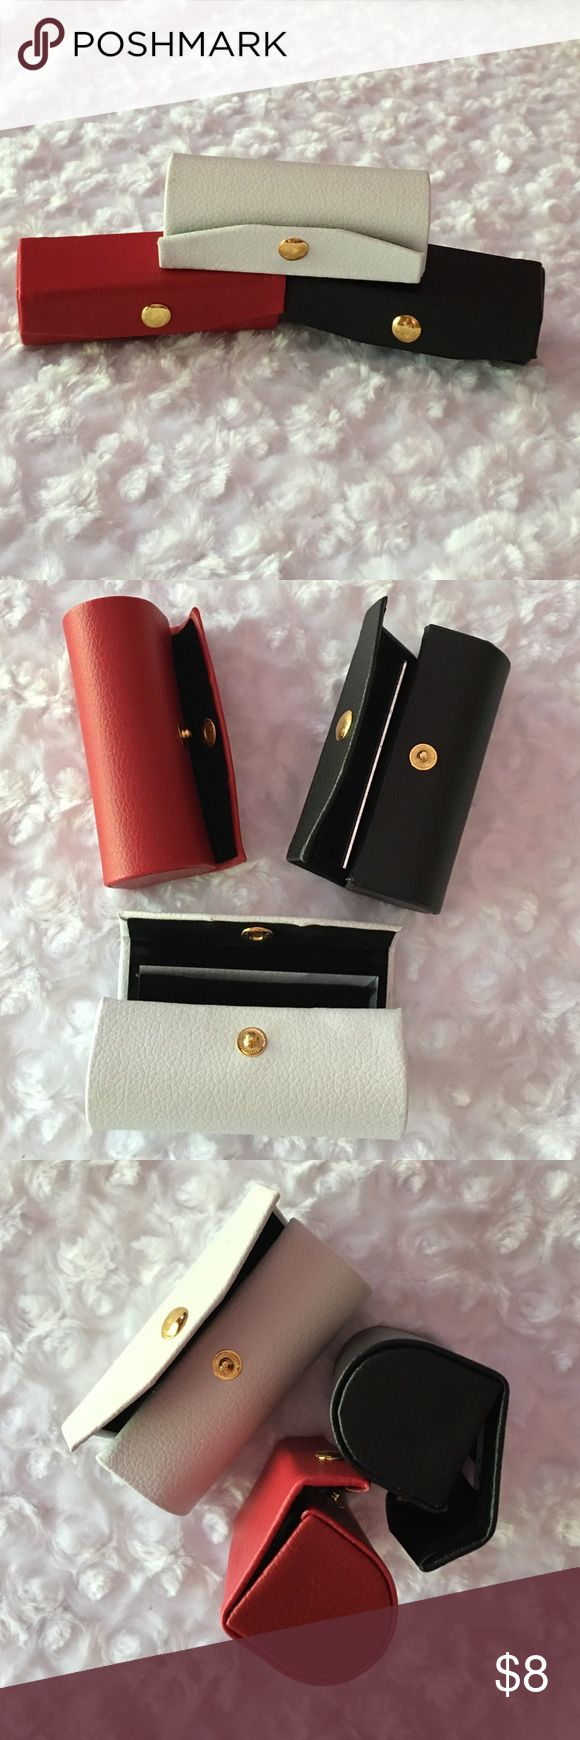 LEATHER LIPSTICK CASES Genuine leather lipstick cases with Mirror. Black. Red. White. Indicate which color. Stay Classy my friends. -No trades. Makeup Brushes & Tools